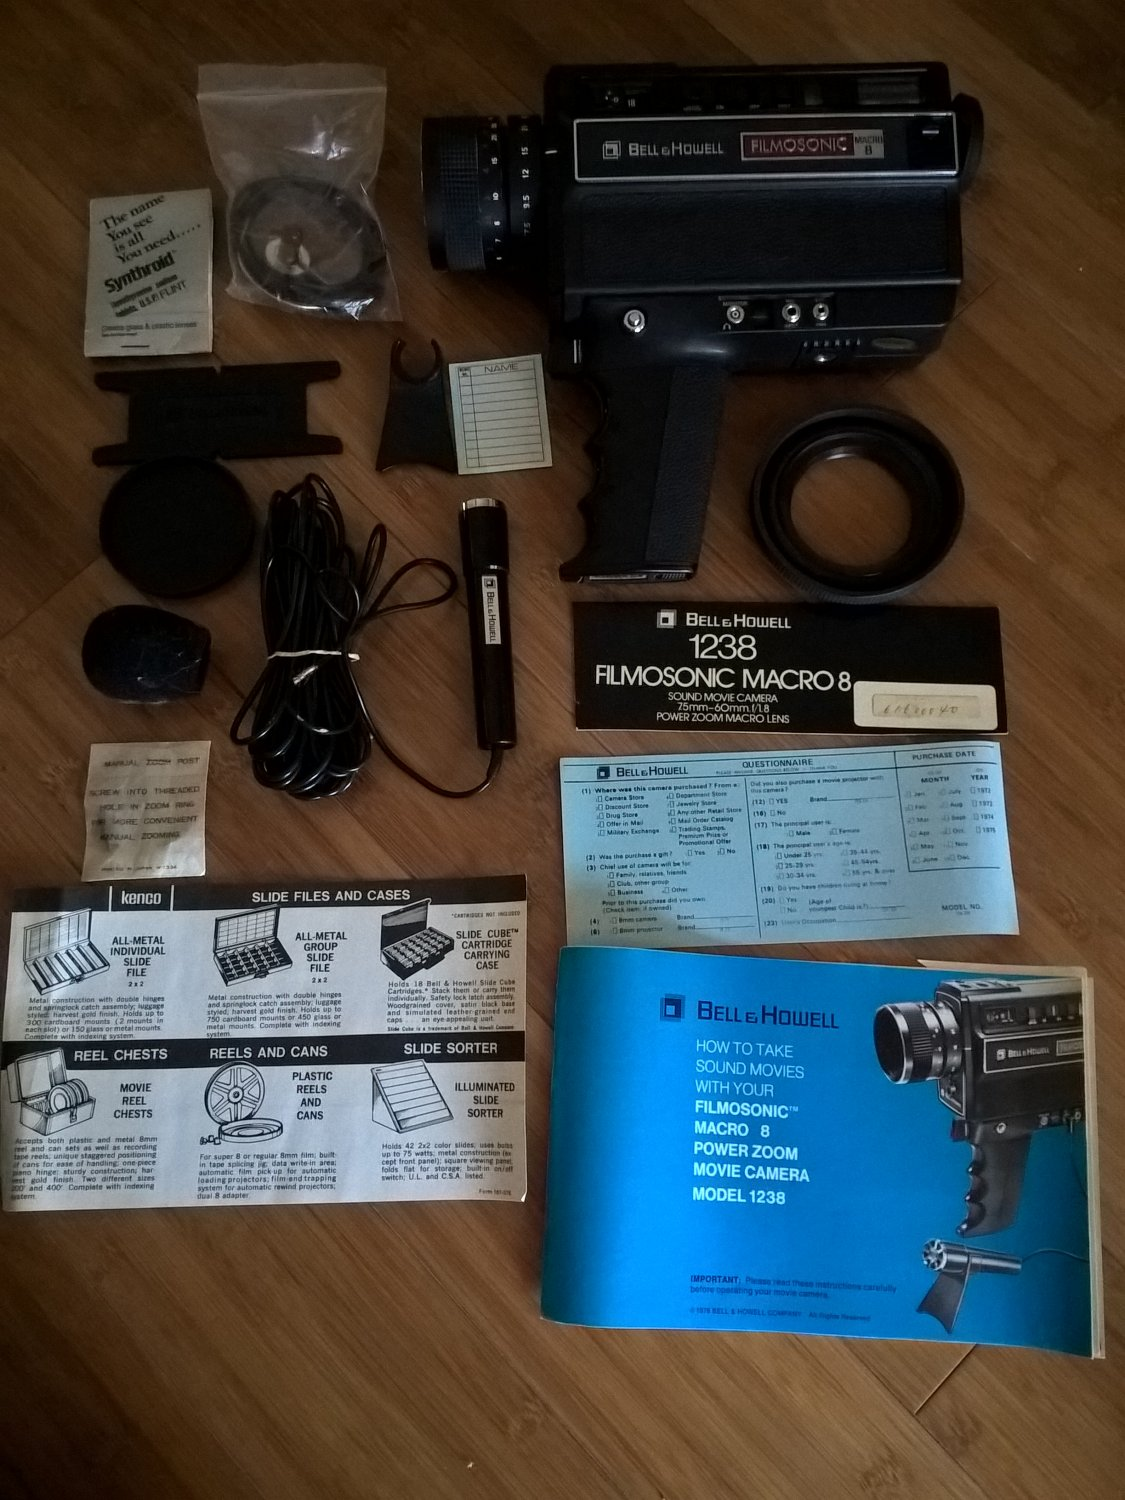 Bell & Howell FilmoSonic Macro 8 1238 W/ Accessories, Super8 Camera